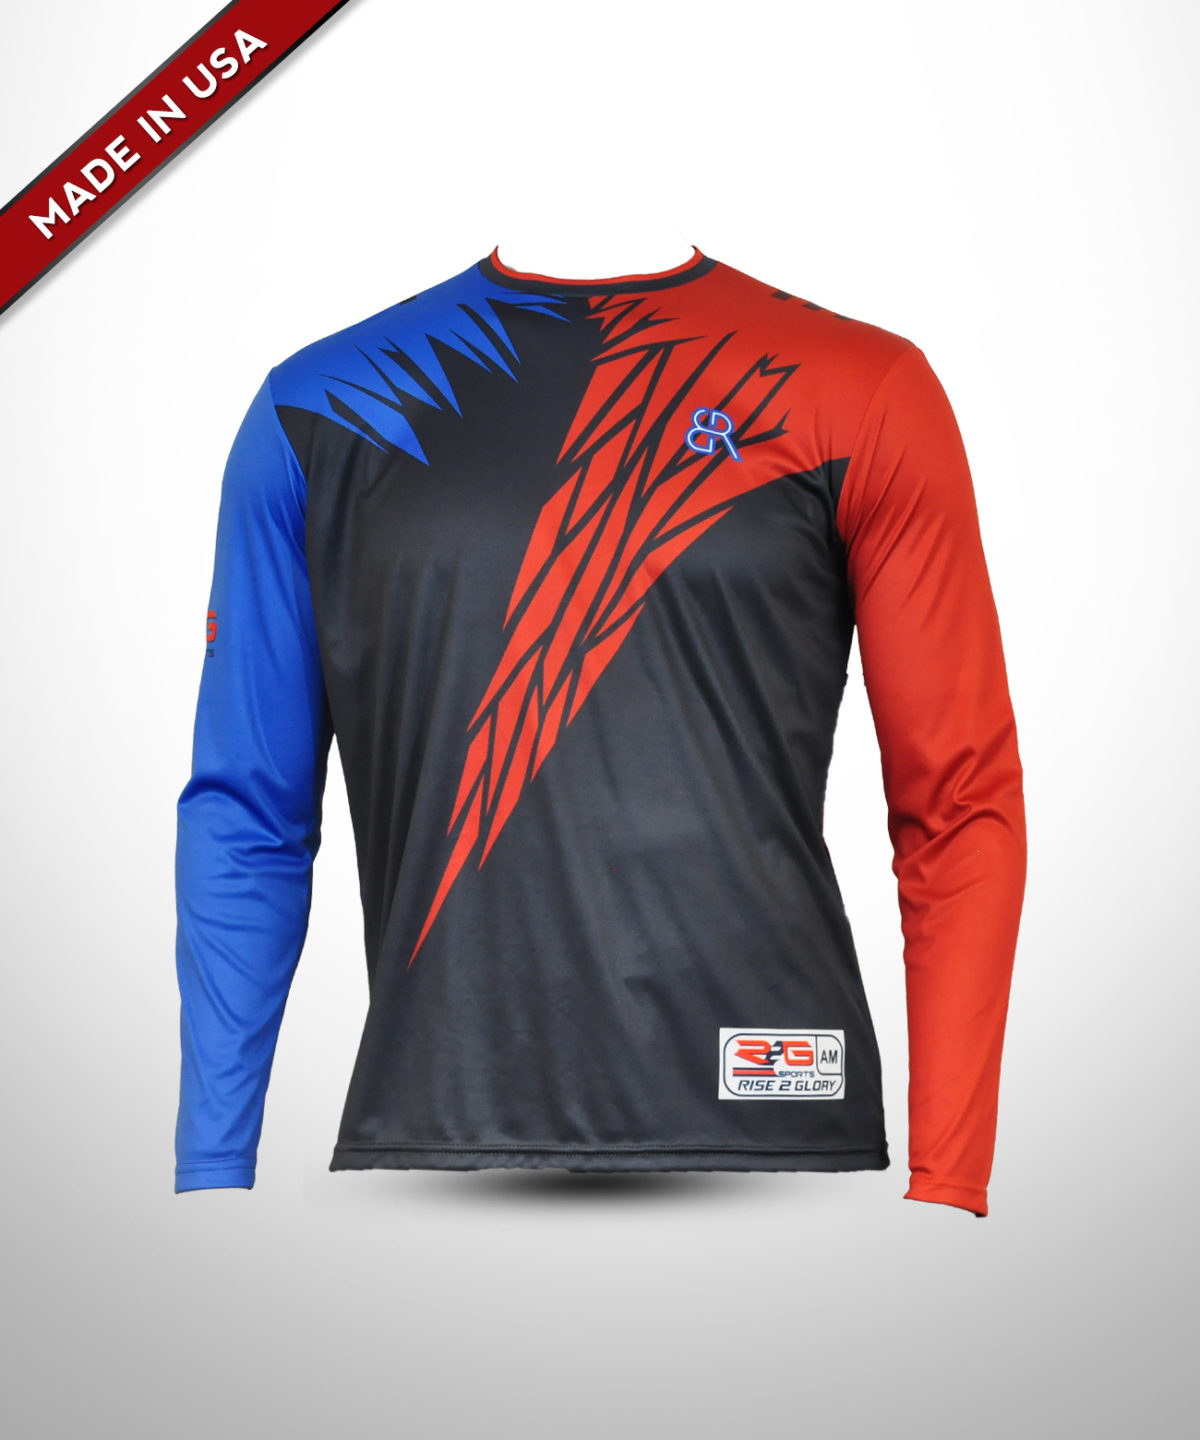 Full Dye Sub Compression Shirt – Long Sleeves – Adult